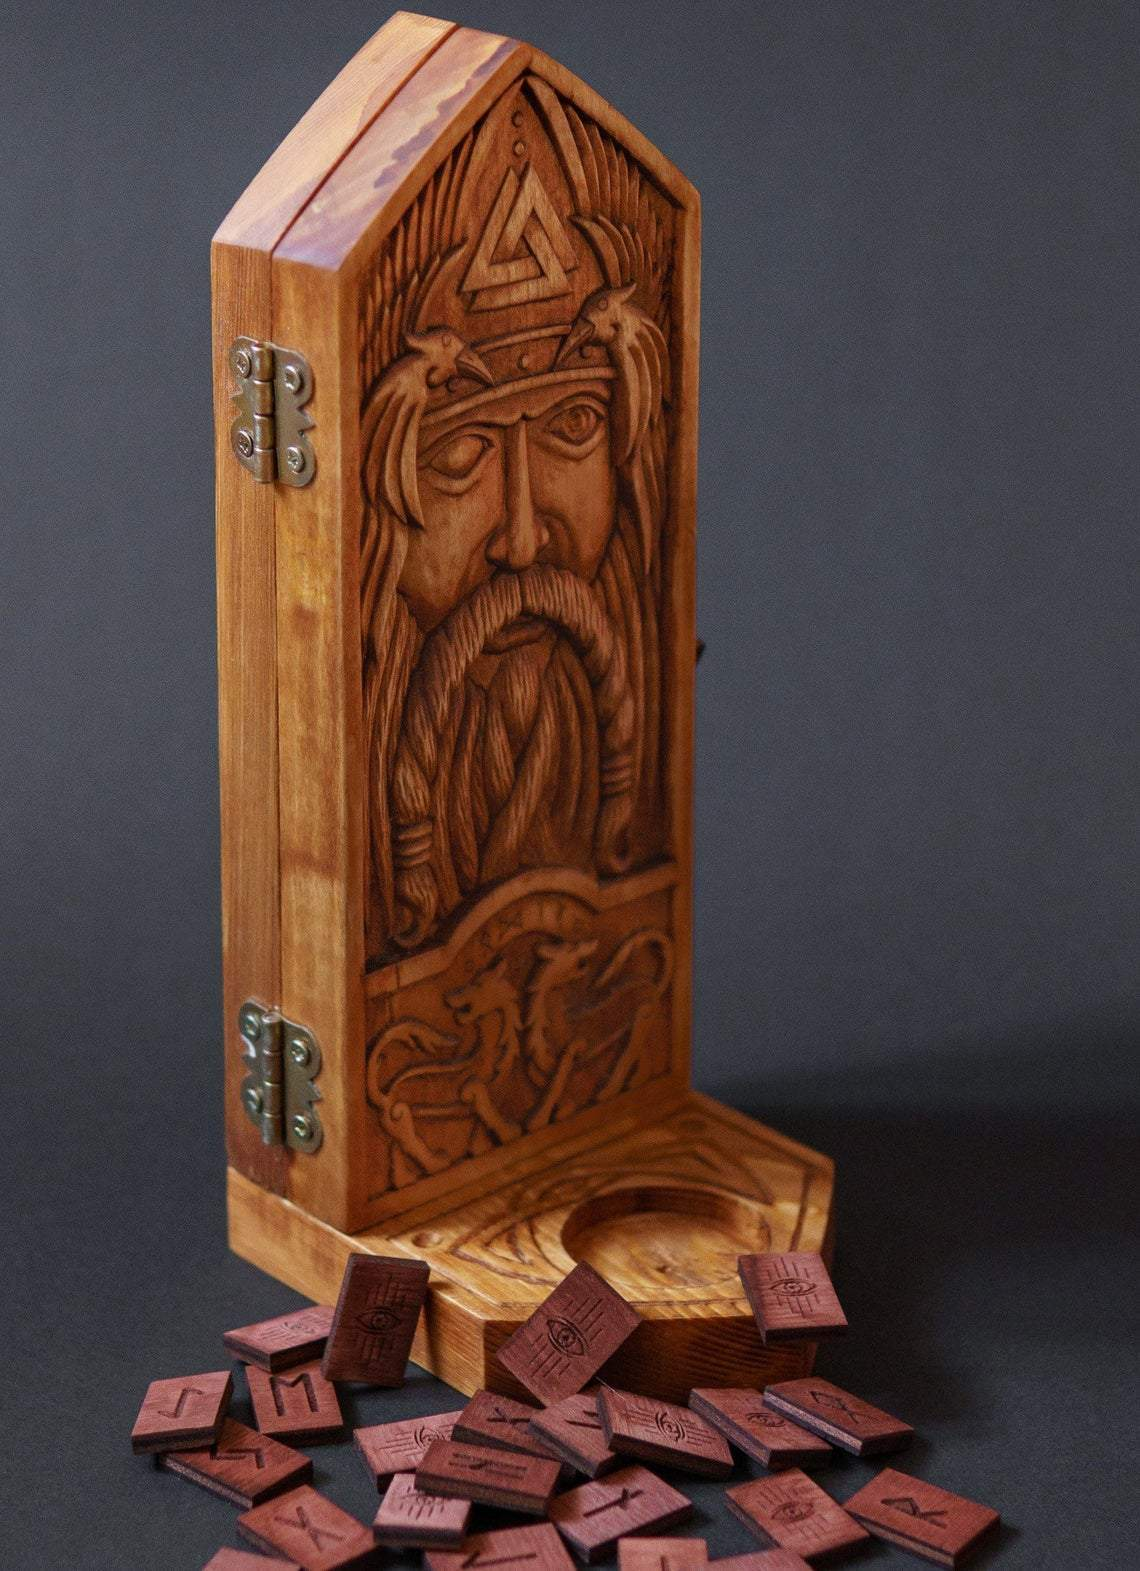 Sculptures & Figurines Viking God Odin Wooden Casket & Candlestick Holder with Wooden Runes Ancient Treasures Ancientreasures Viking Odin Thor Mjolnir Celtic Ancient Egypt Norse Norse Mythology